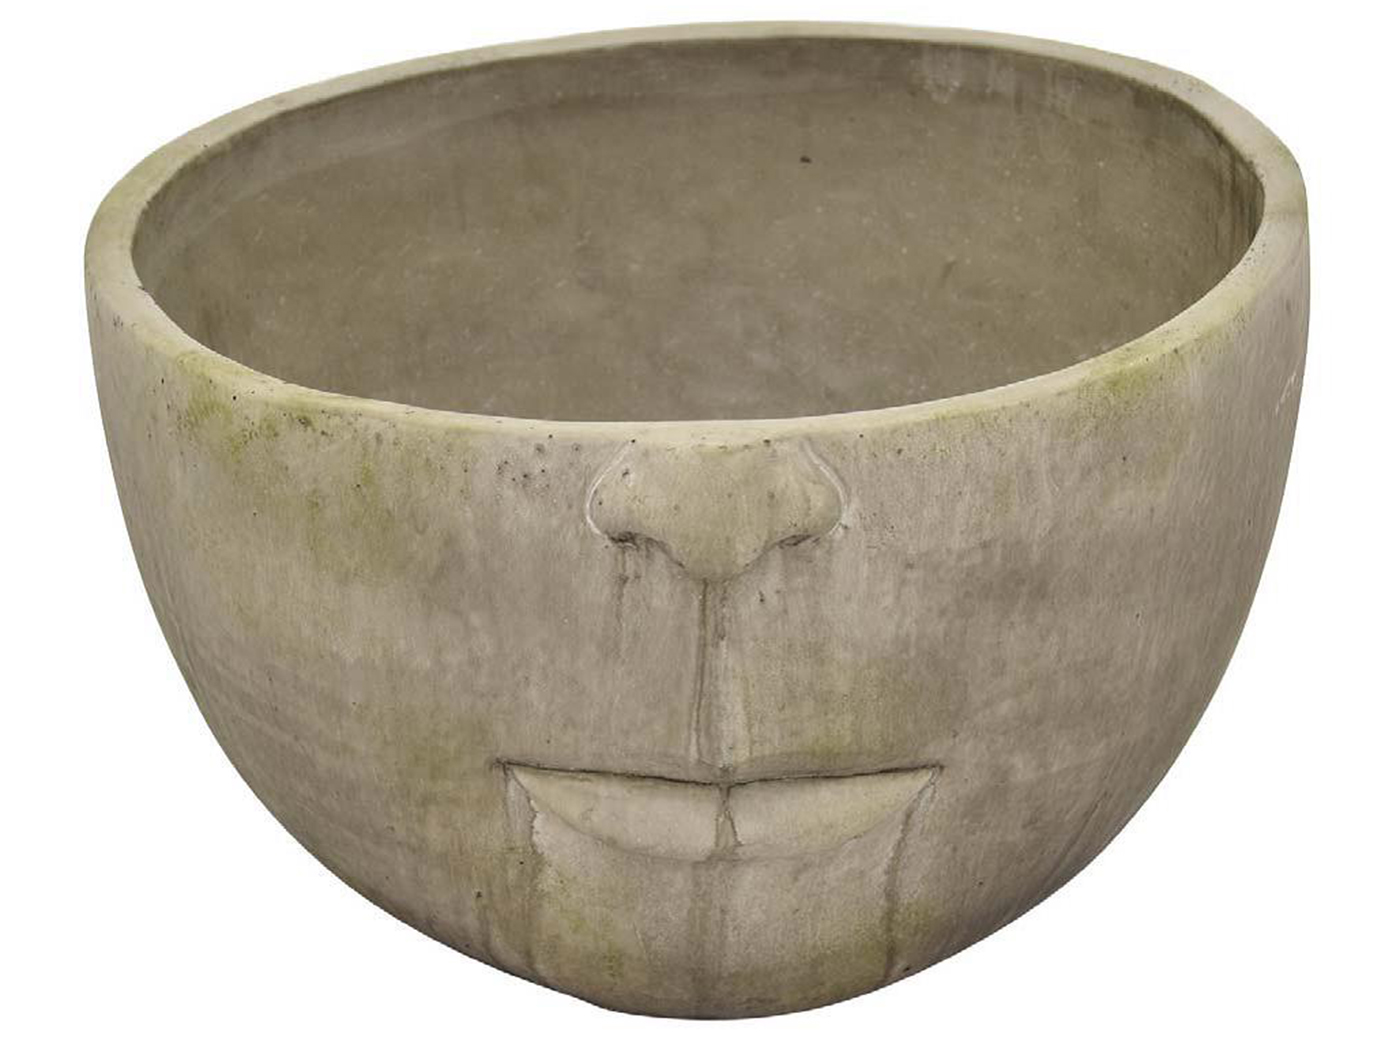 "Large Head Bowl 14""W x 8""H"